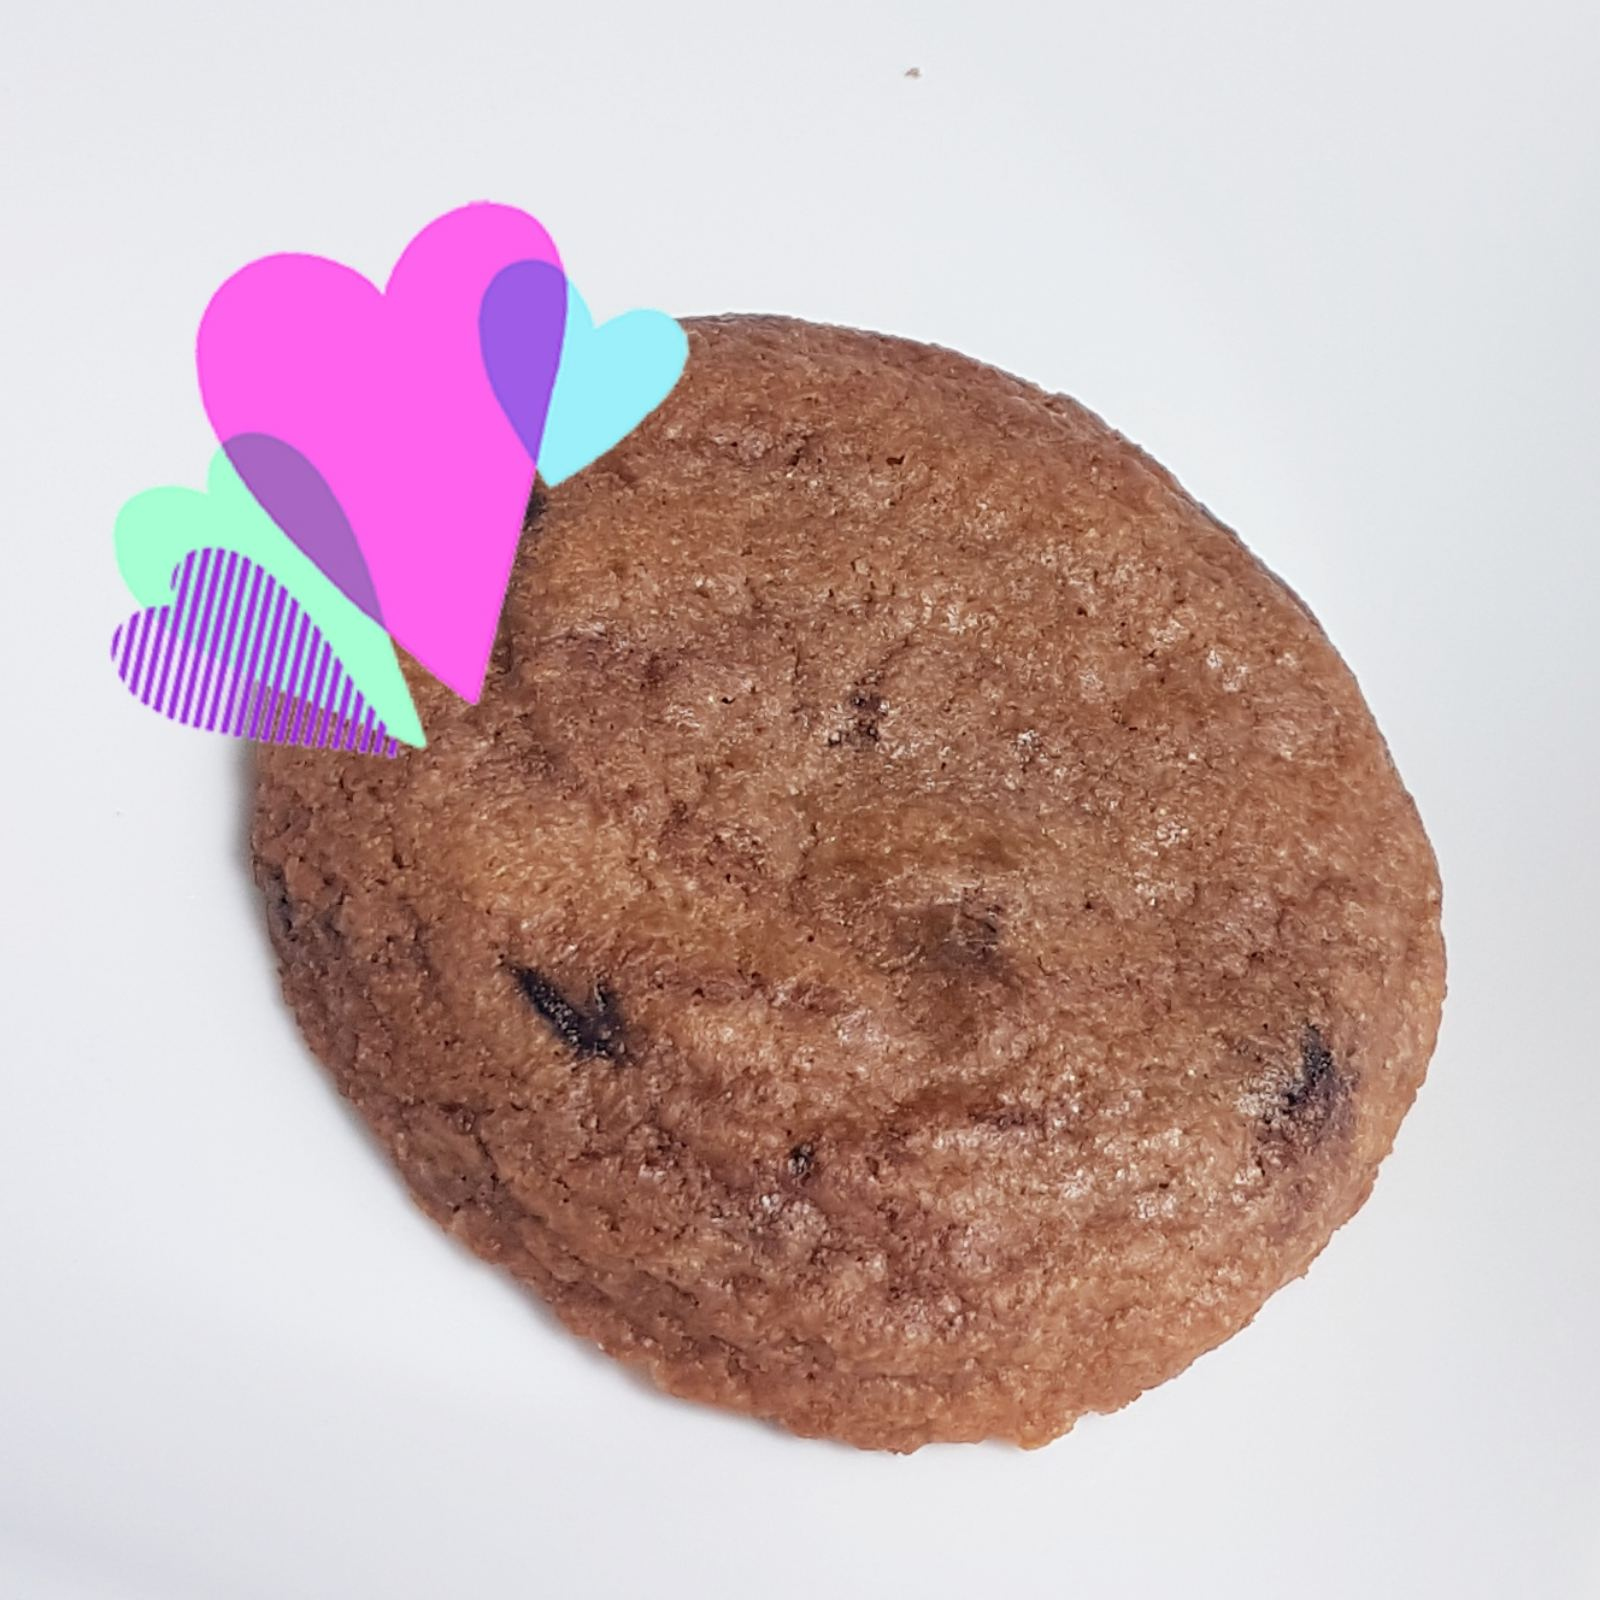 Chocolate cookies 6 pieces